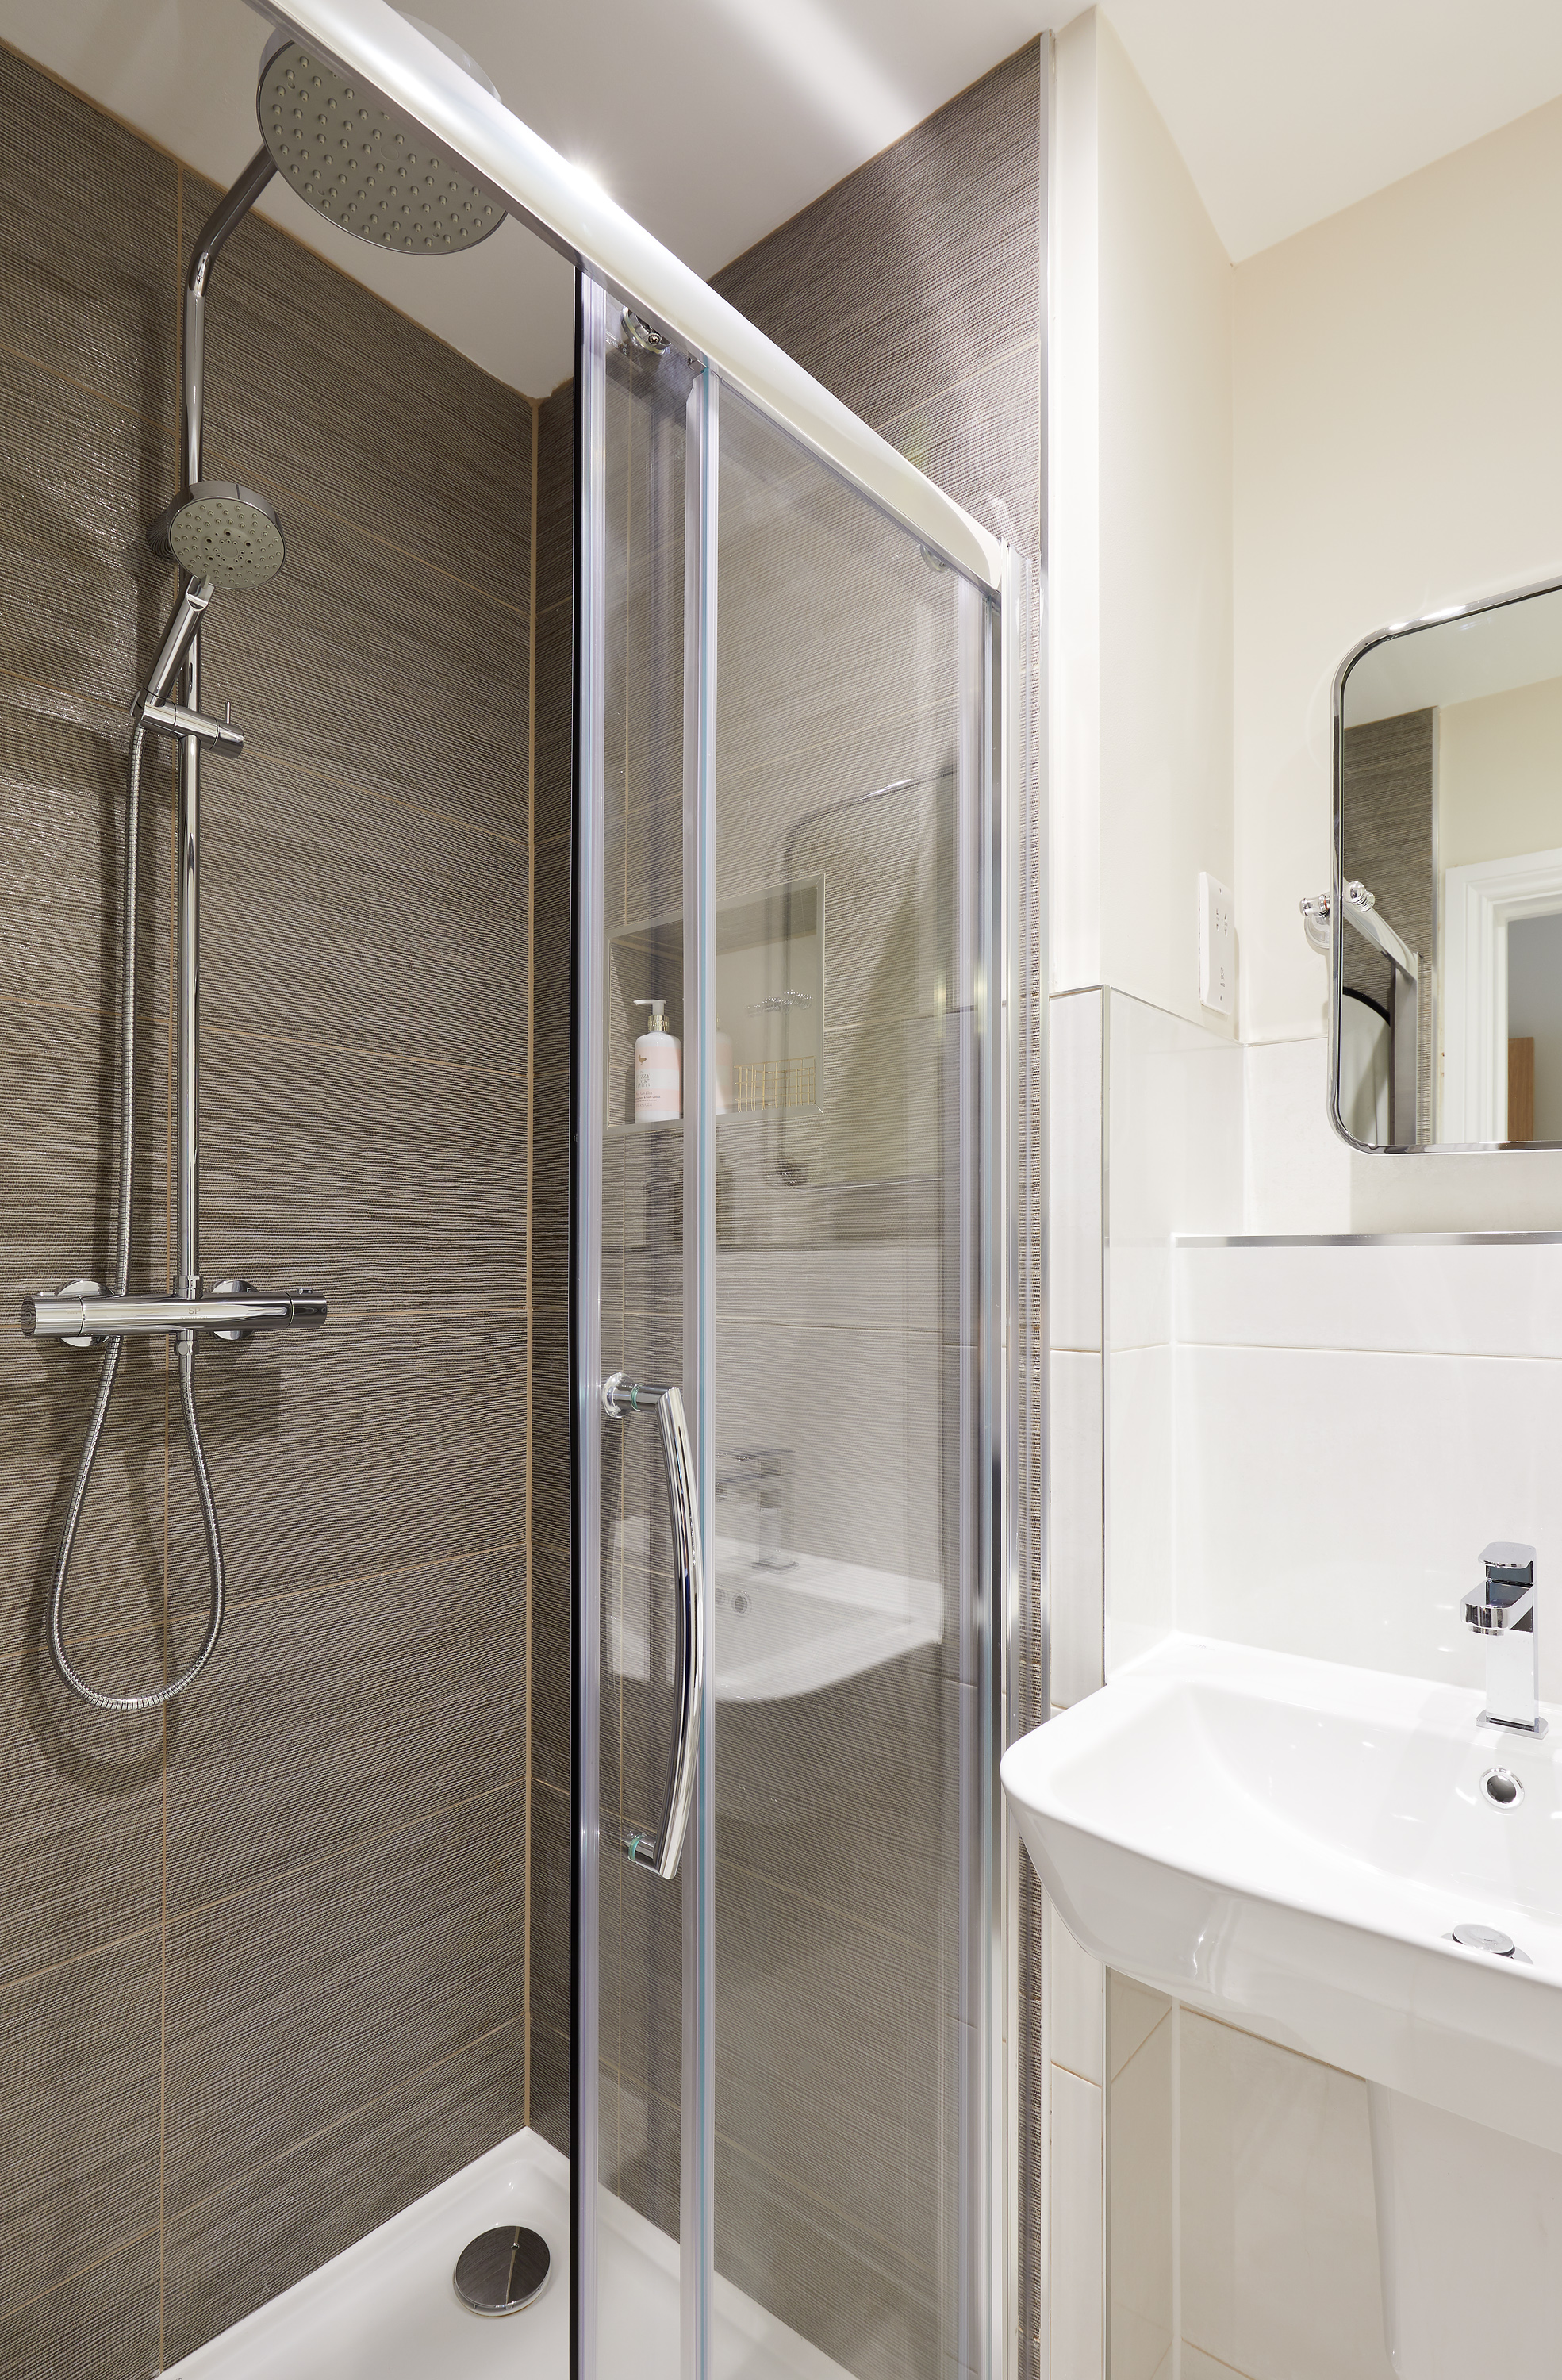 Typical Ensuite Fittings